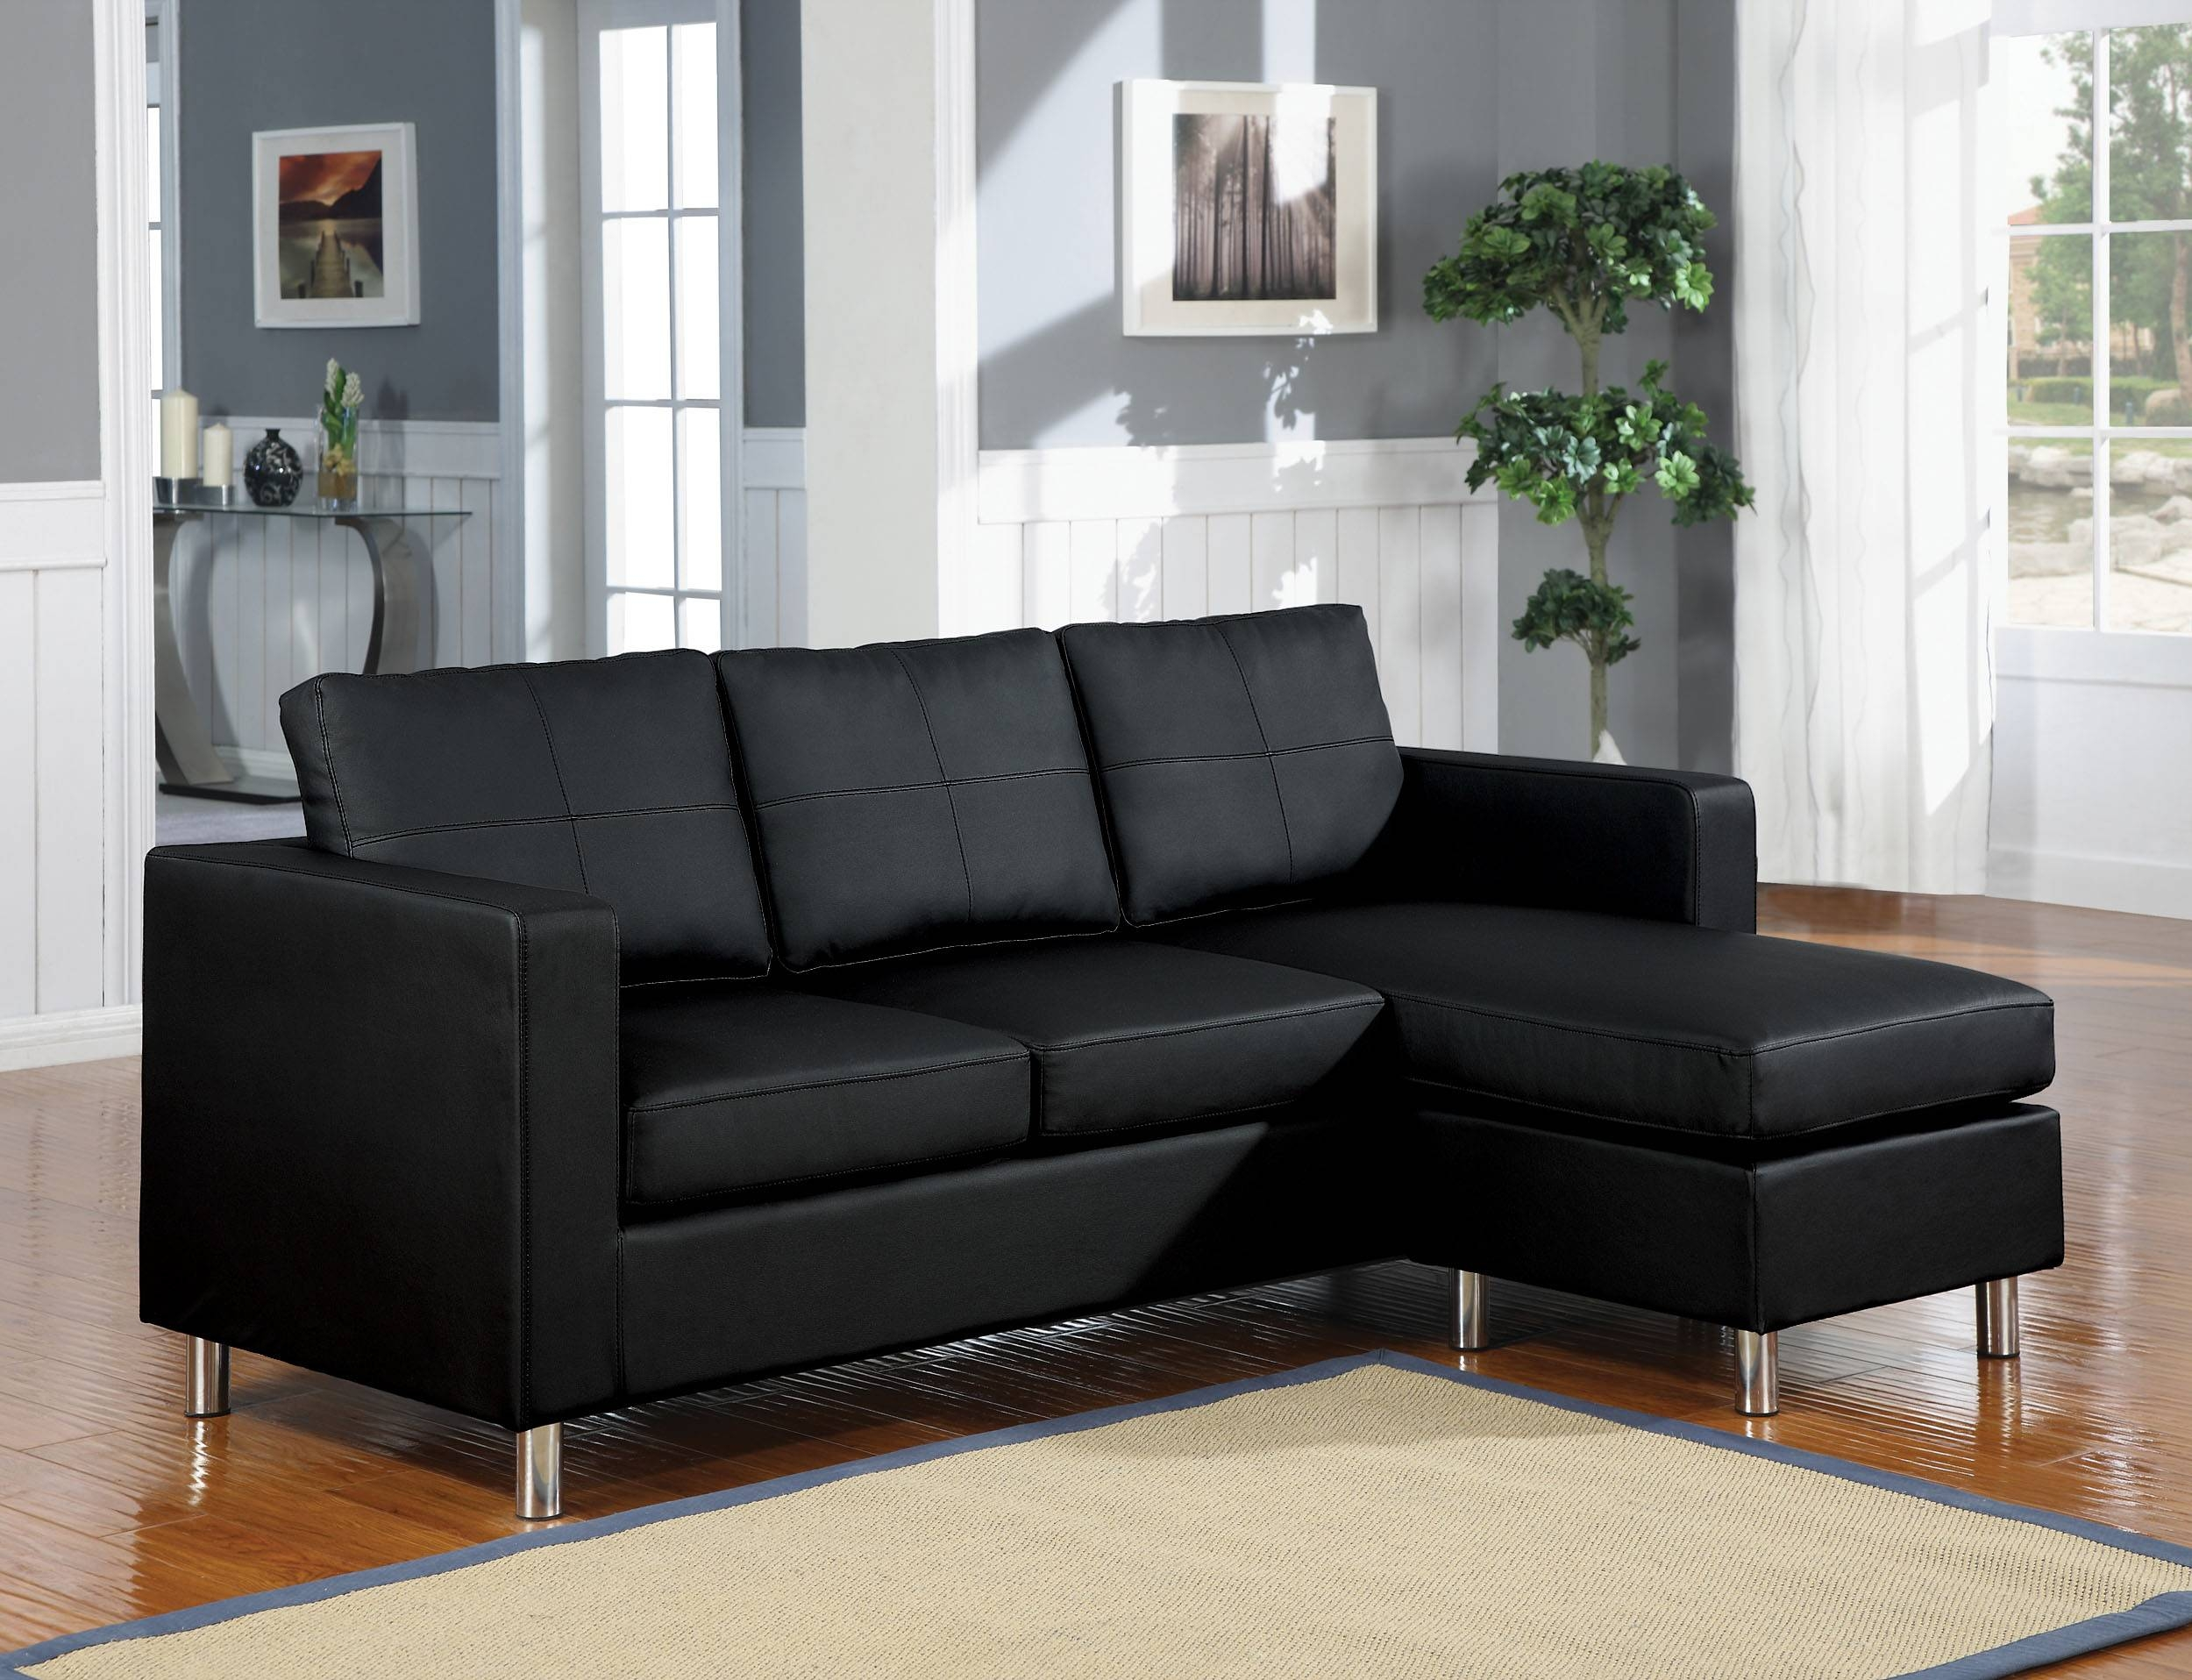 Sectionals - Living Room | Canales Furniture inside Small Modular Sectional Sofa (Image 17 of 25)